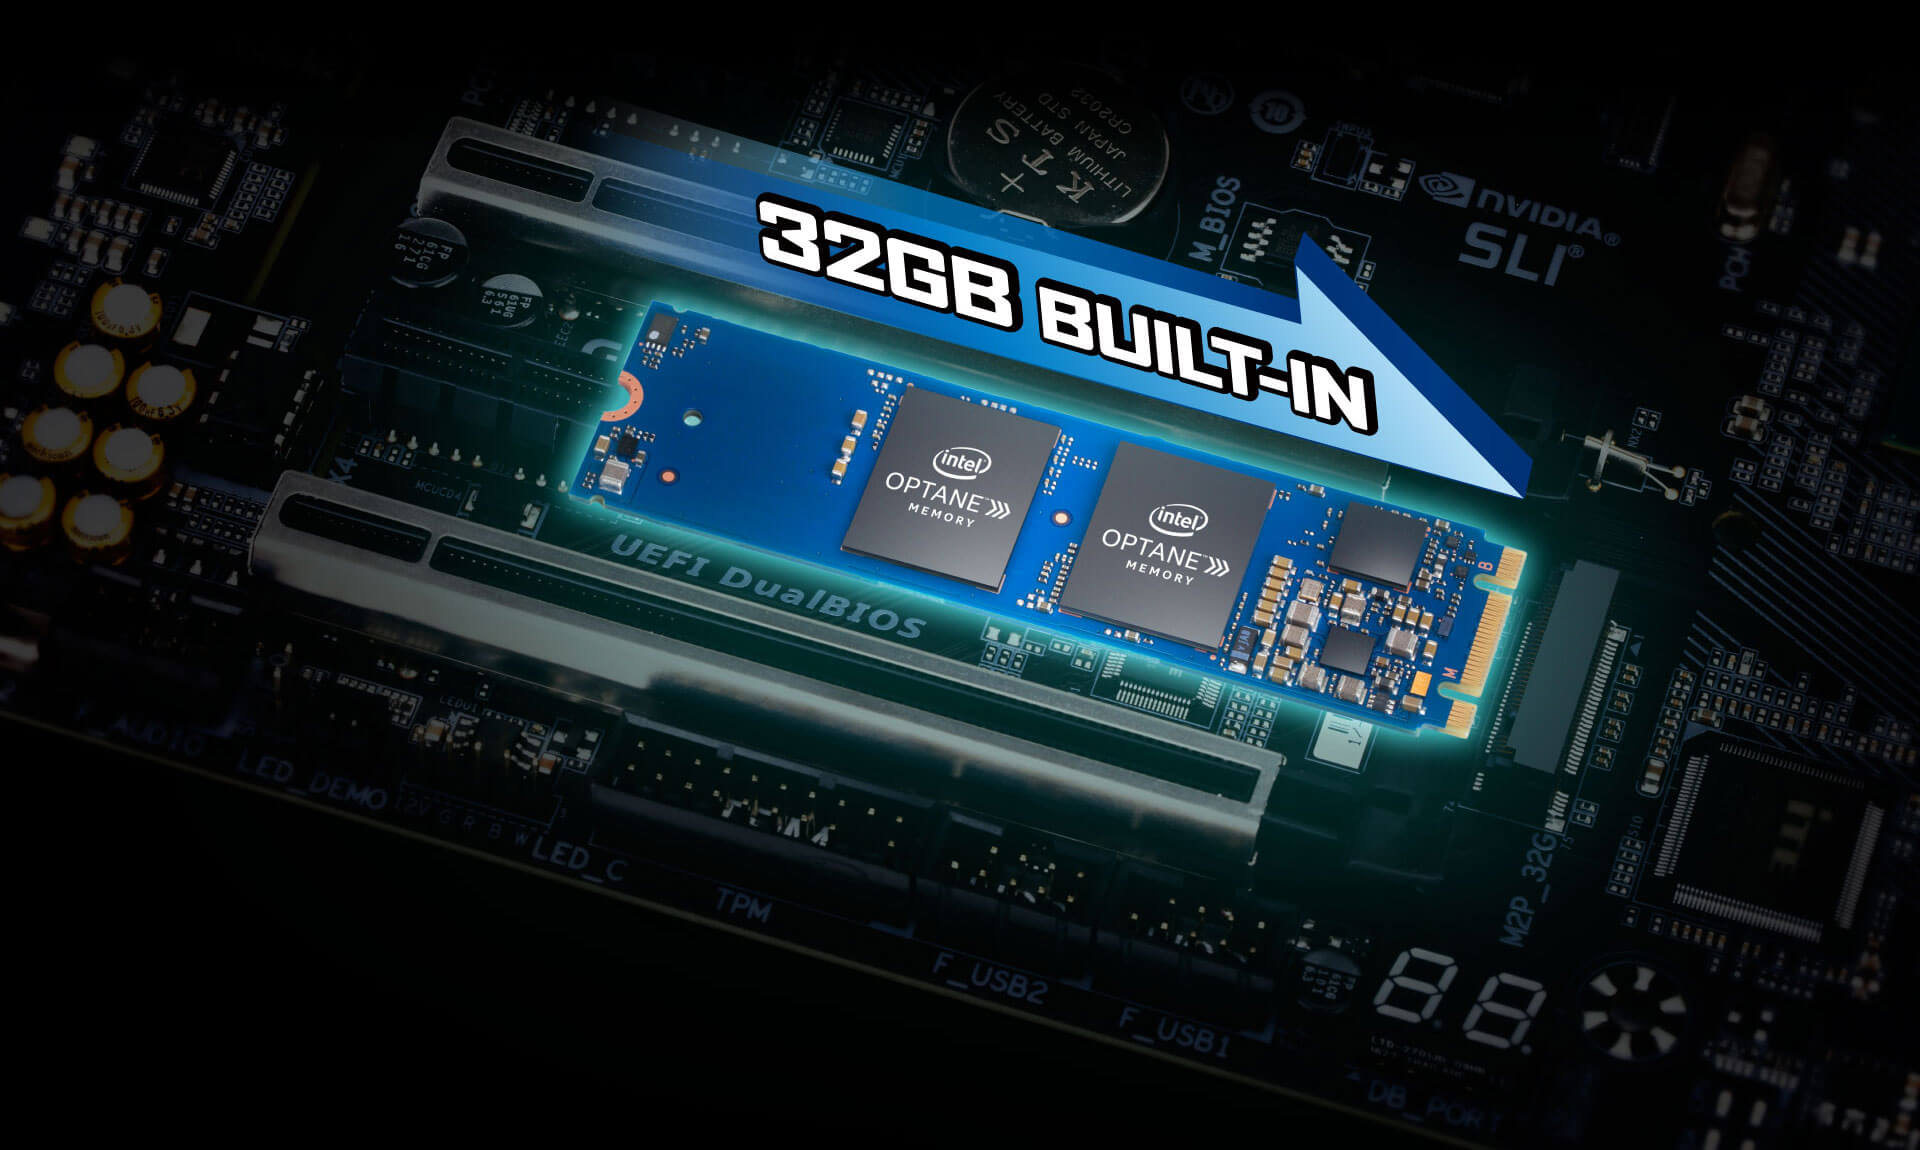 32GB Built-In Optane Preinstalled On the Board